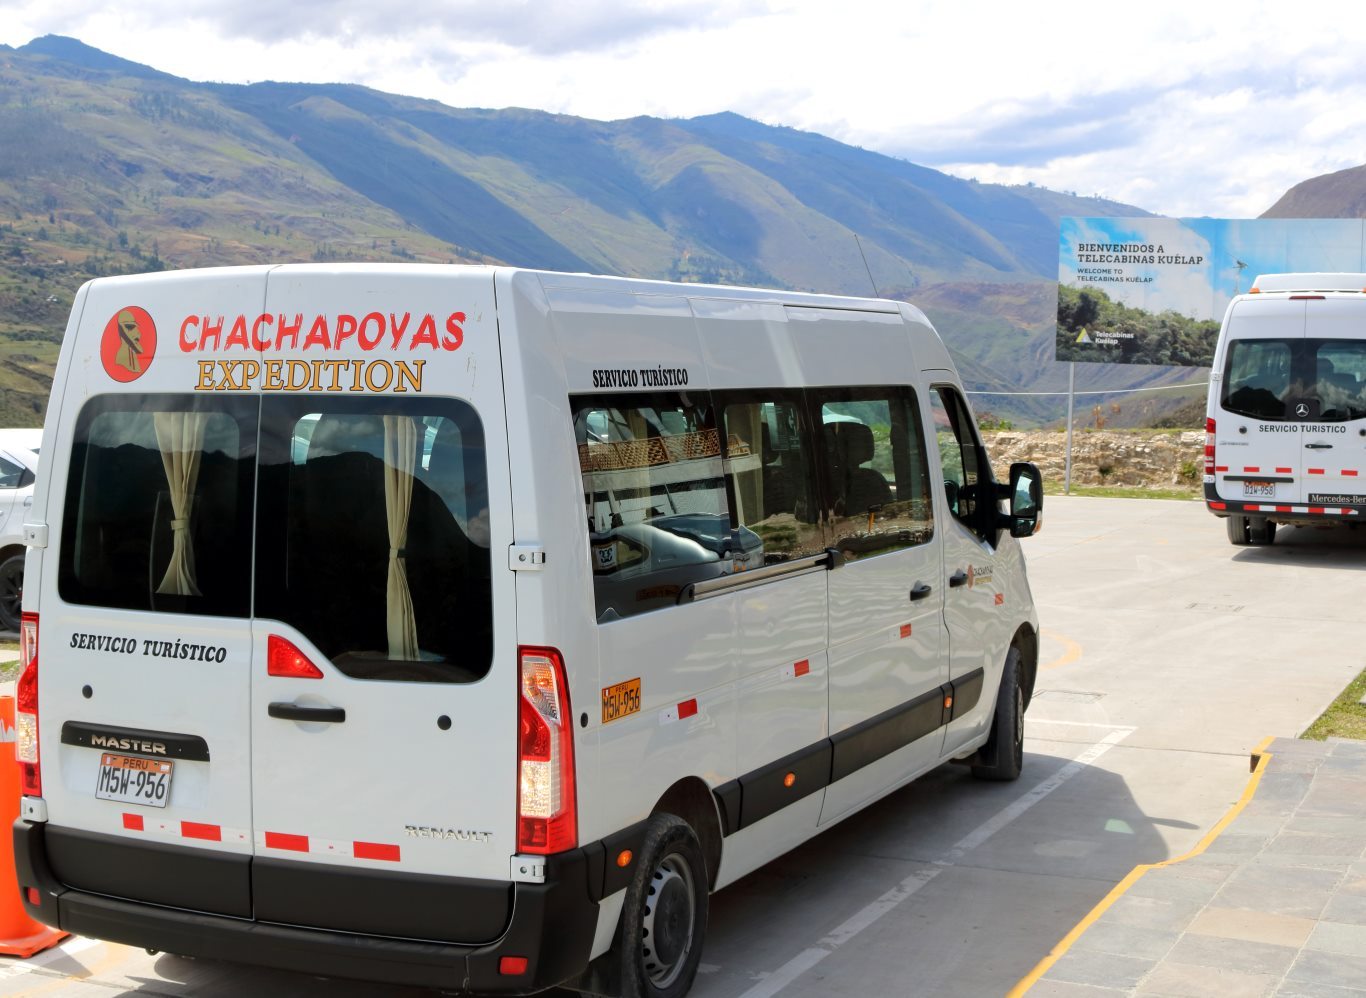 Chachapoyas Expedition tour to Kuelap